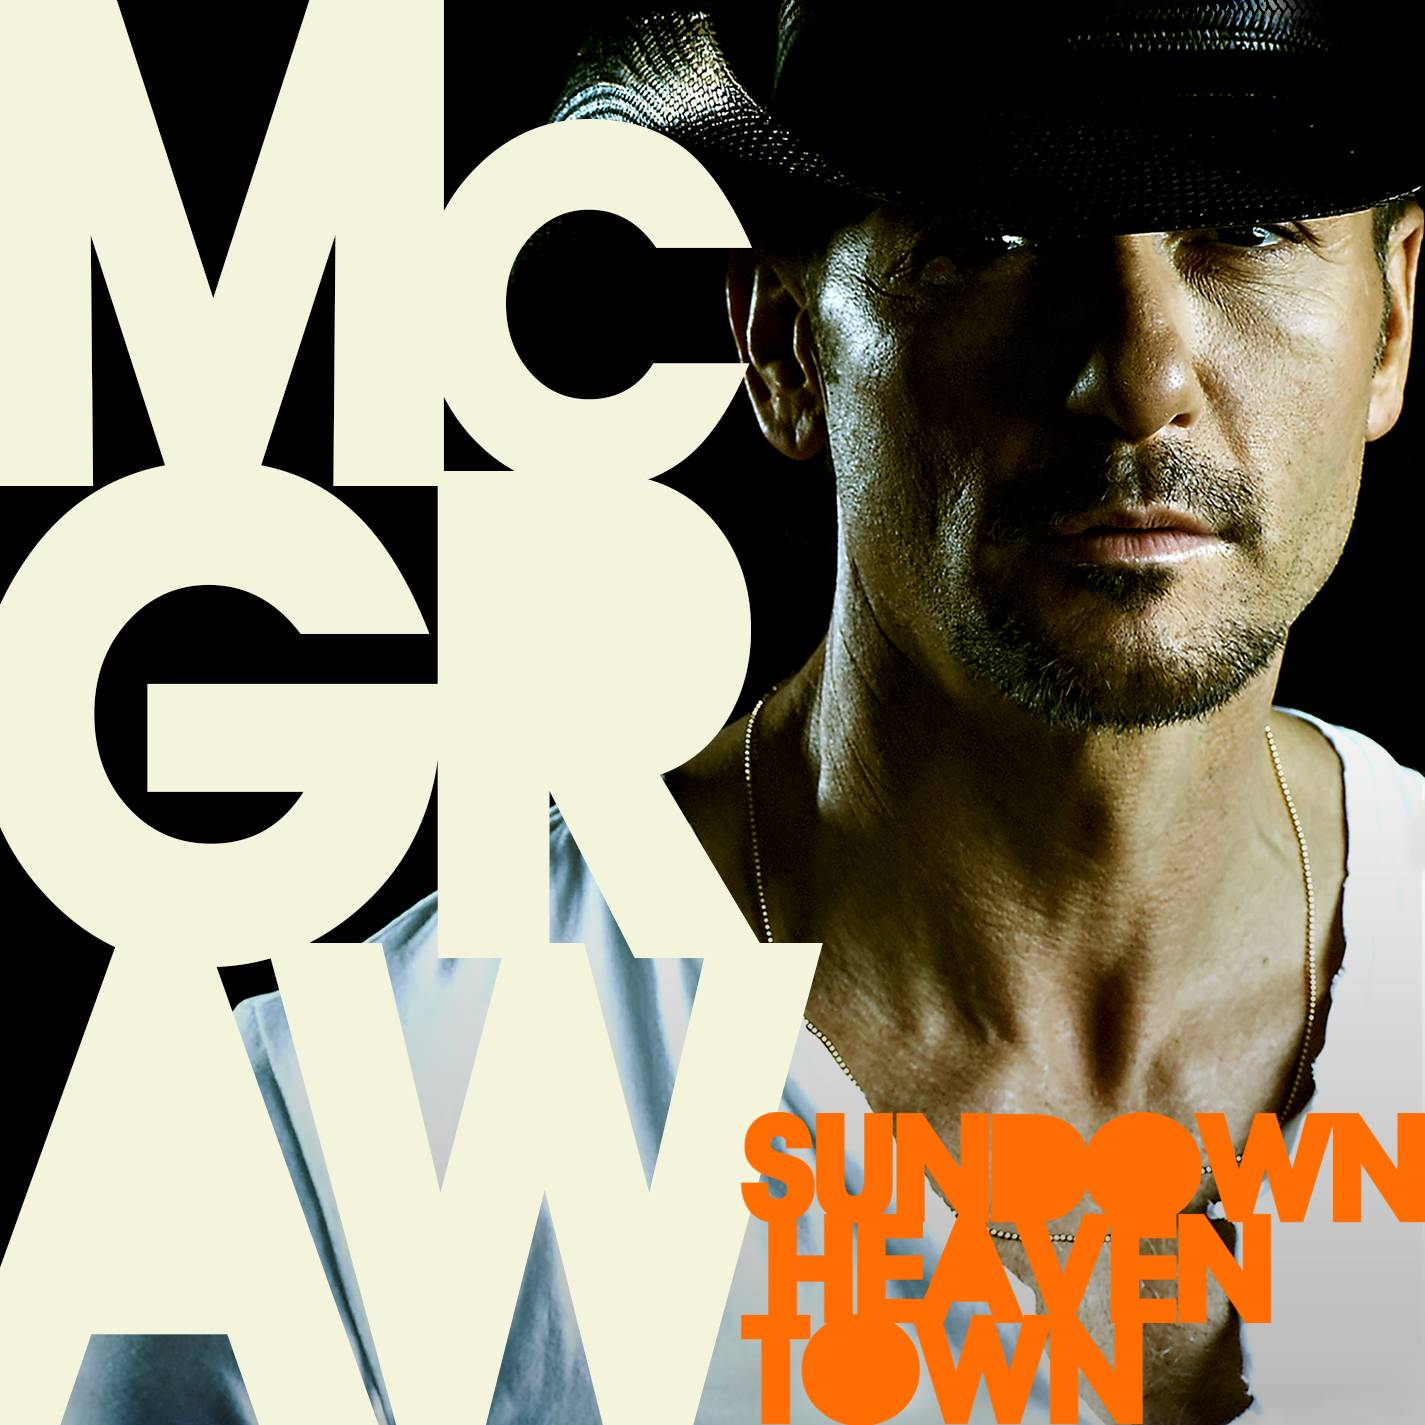 """Sundown Heaven Town"" by Tim McGraw a mixed bag of hits and misses."